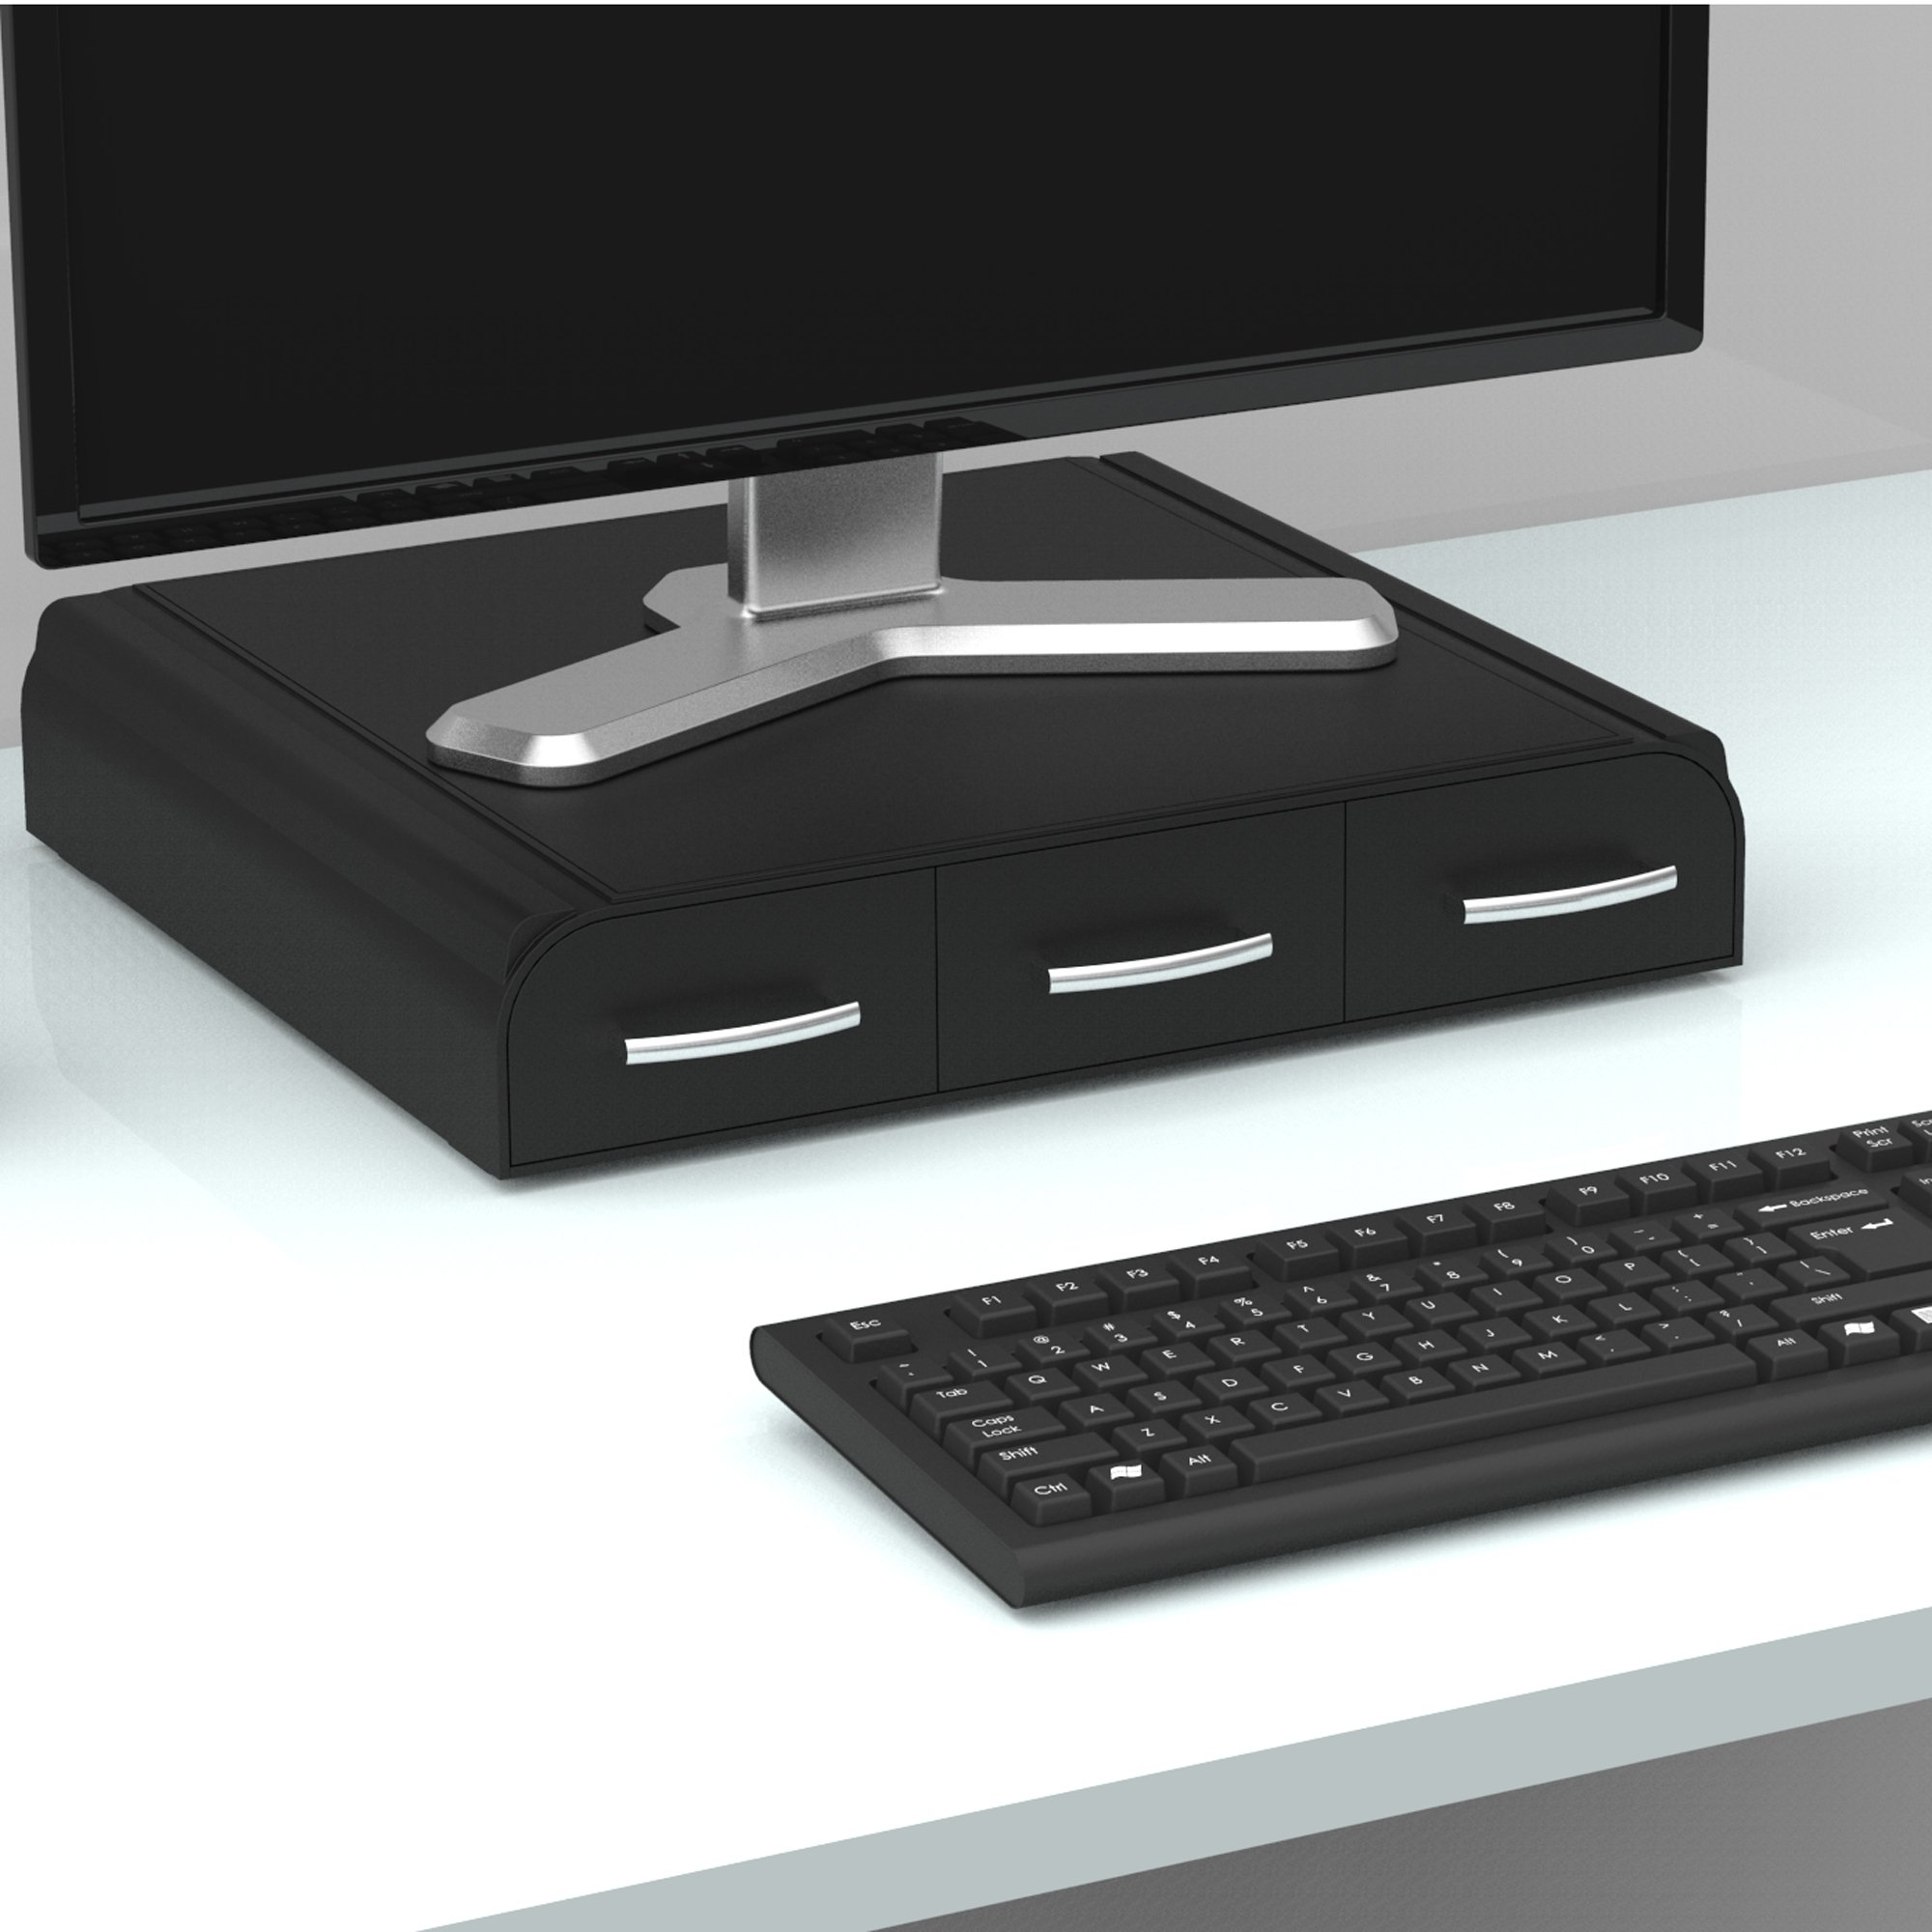 Mind Reader PC, Laptop, IMAC Monitor Stand and Desk Organizer, Black by Mind Reader (Image #4)